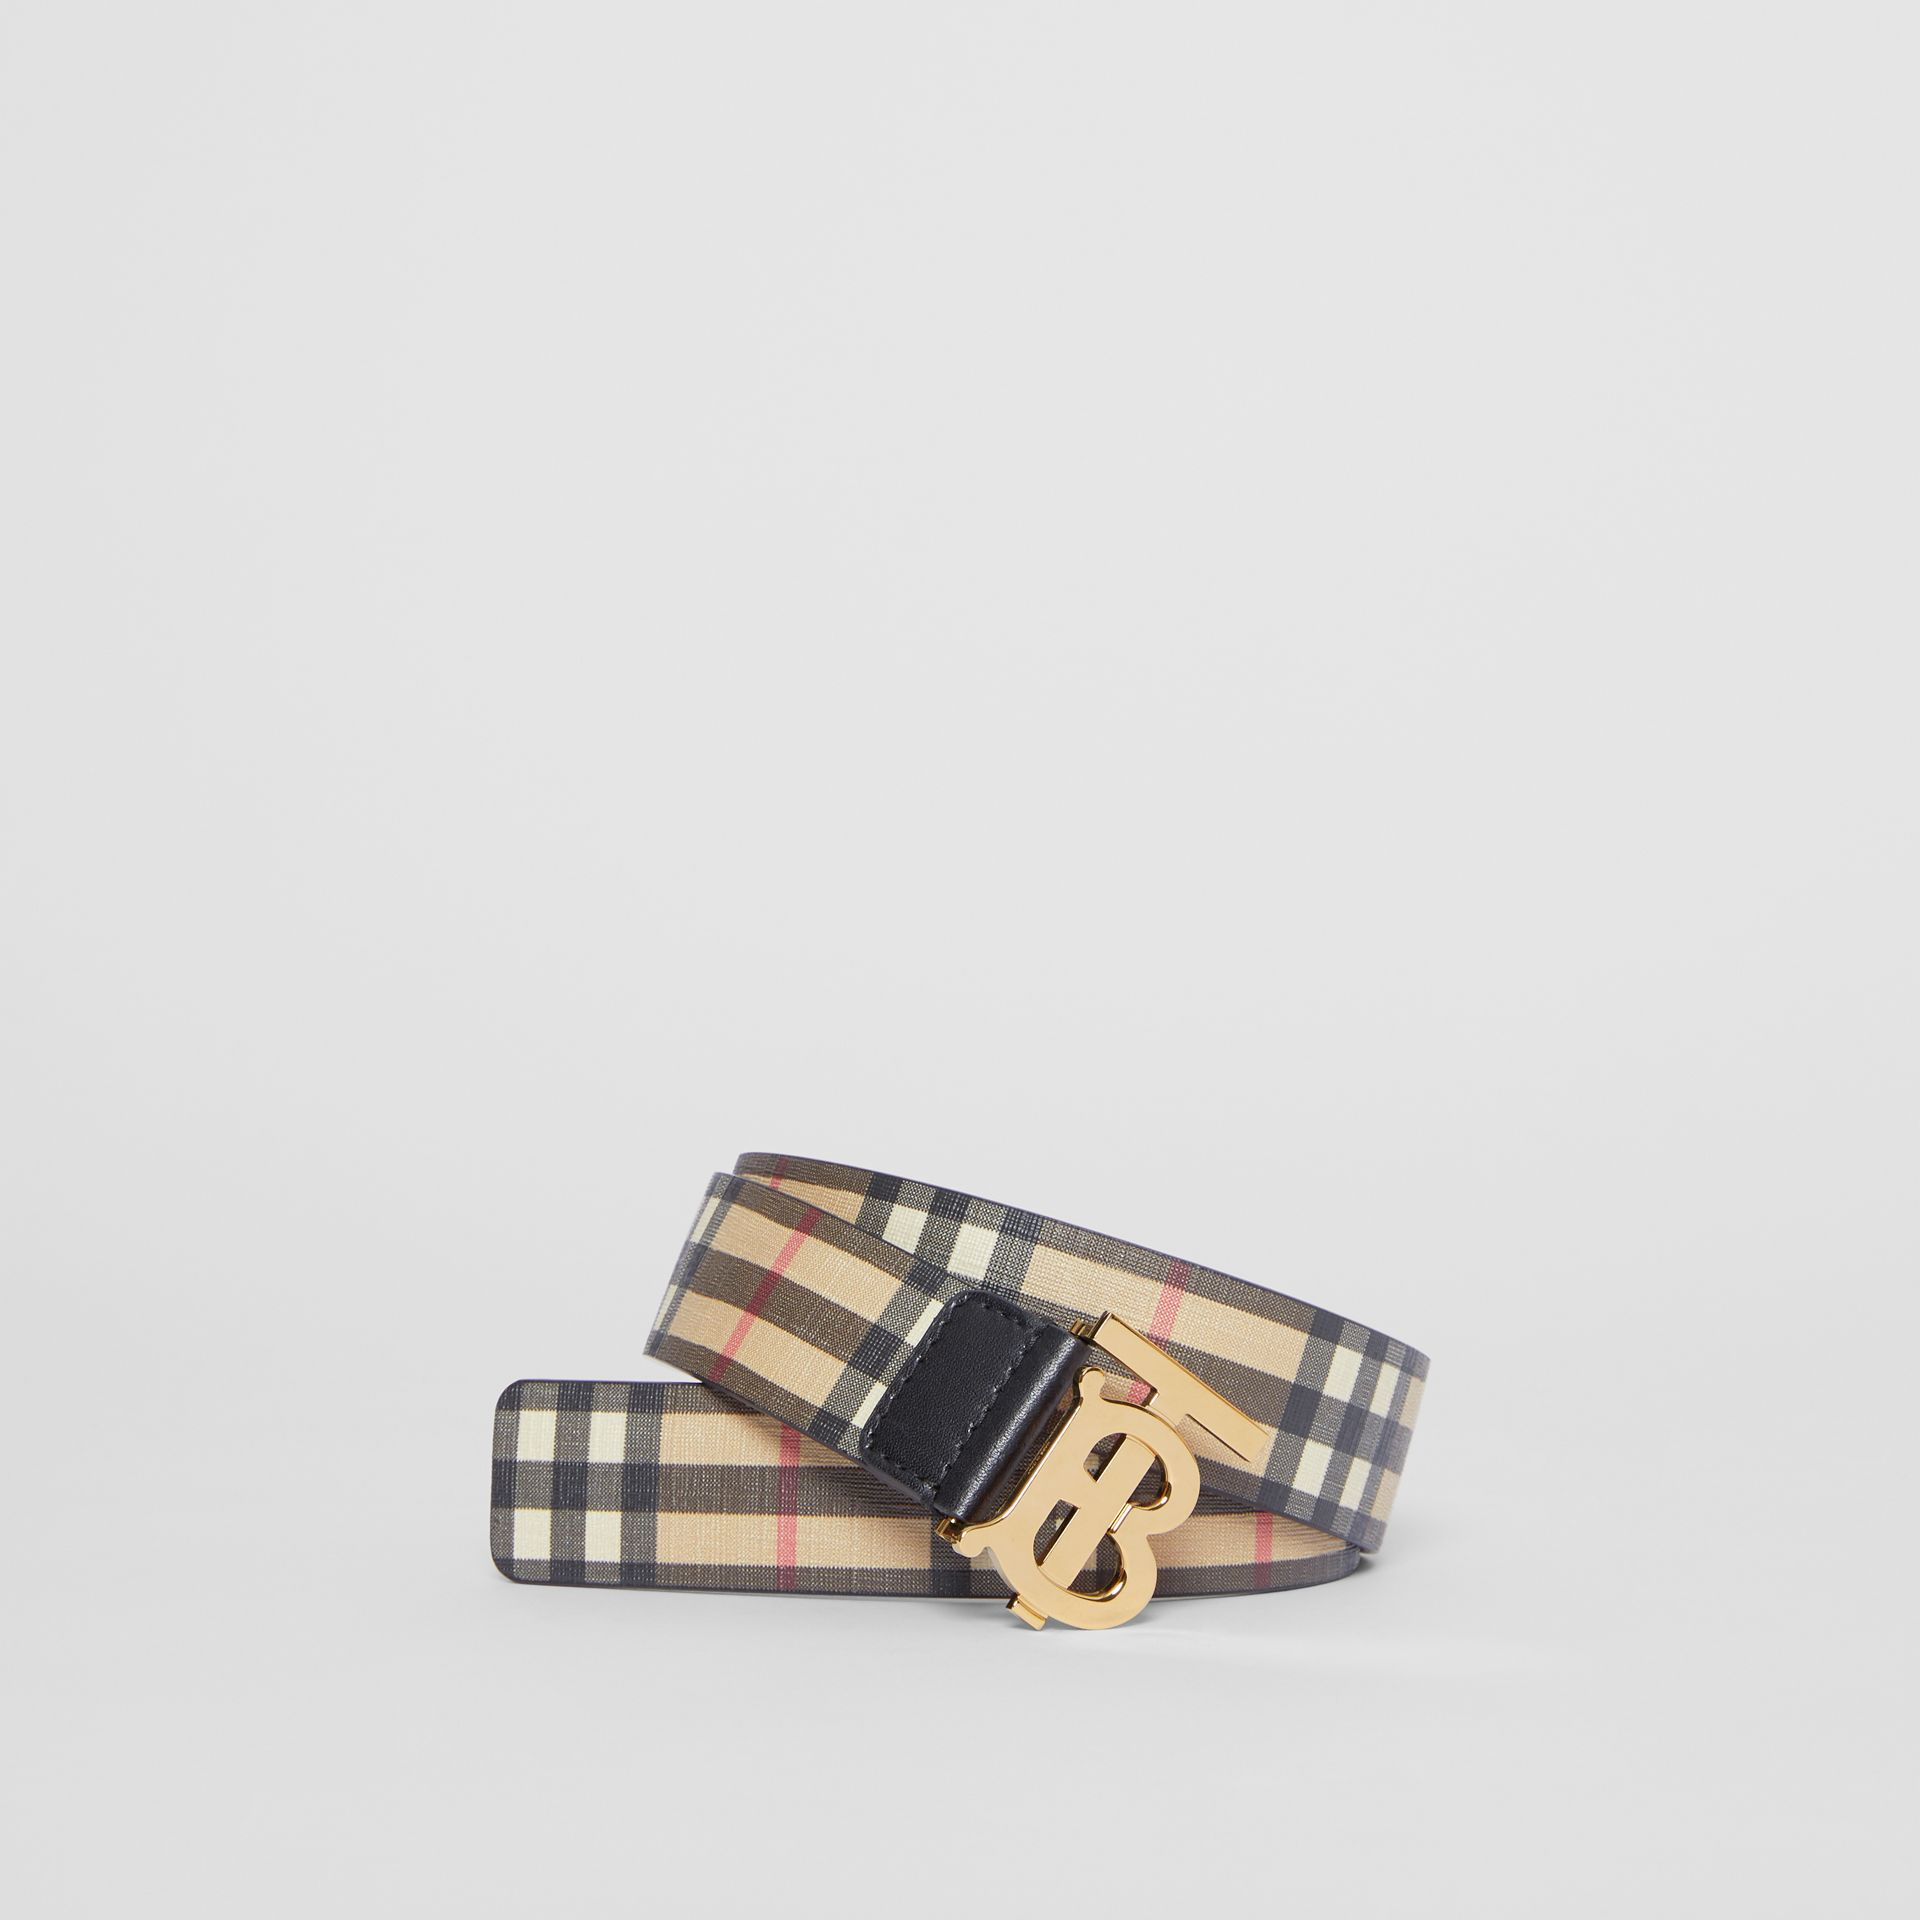 Monogram Motif Vintage Check E-canvas Belt in Archive Beige - Women | Burberry - gallery image 0